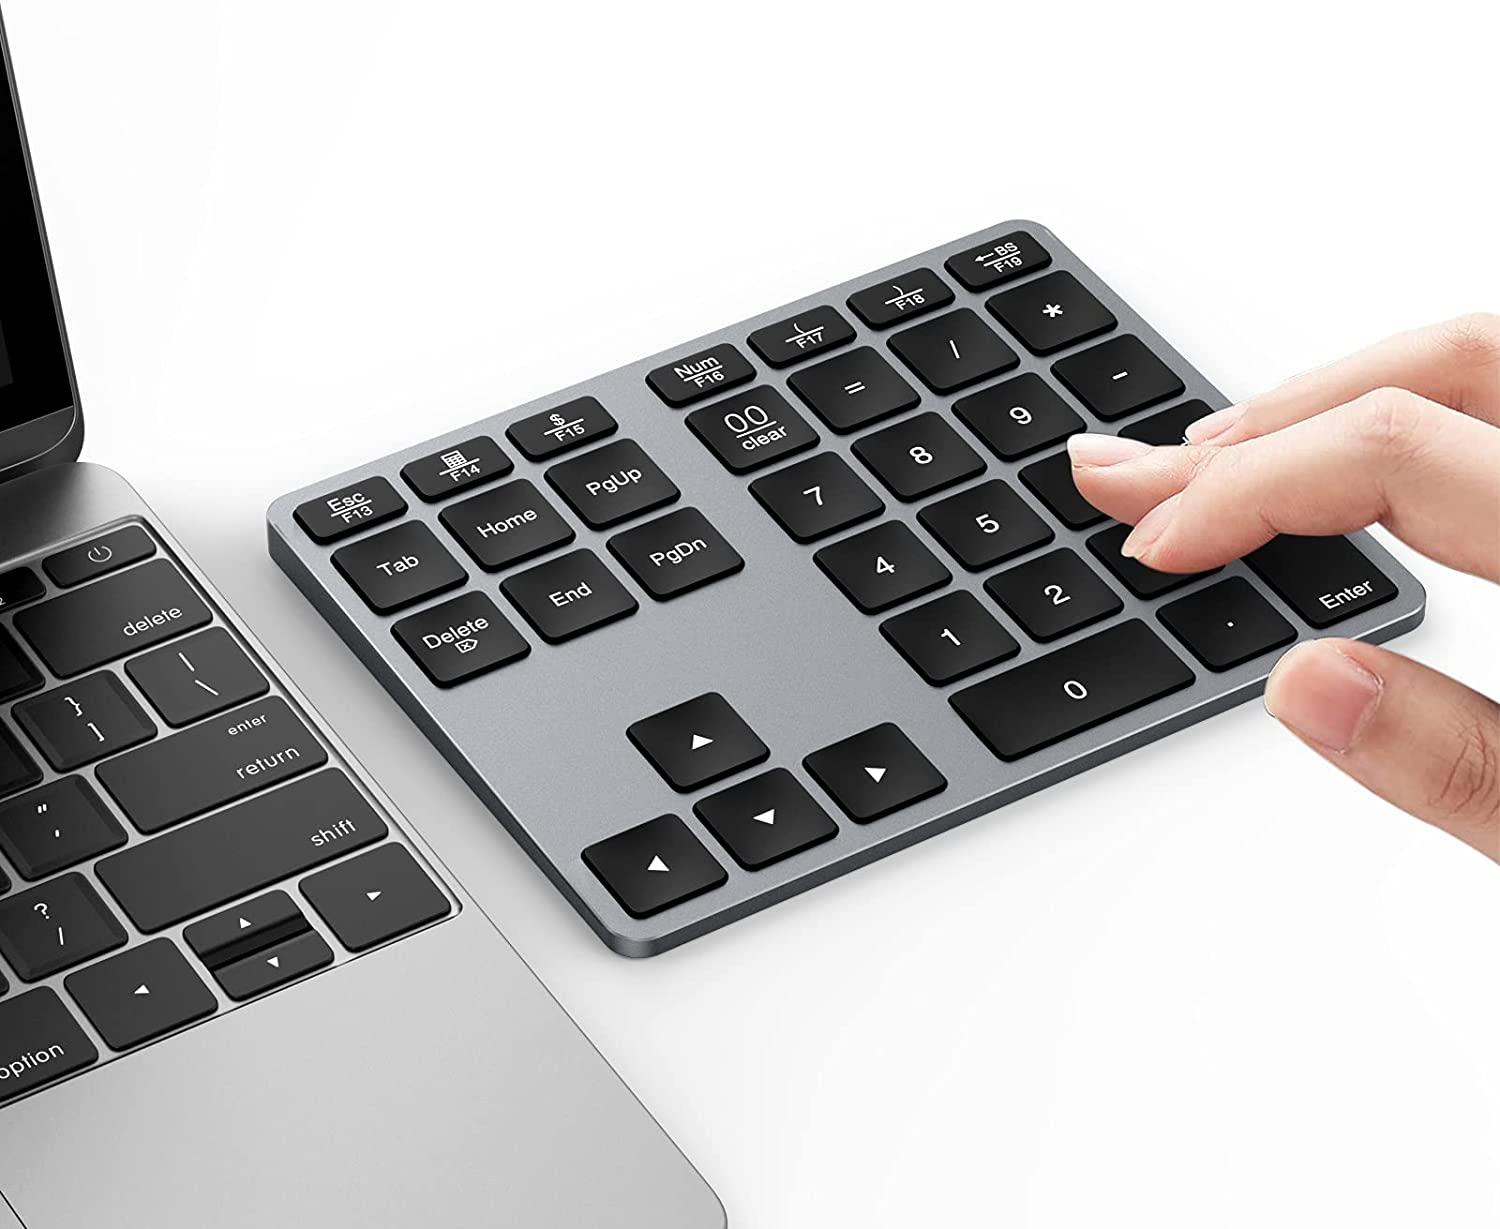 Wireless Bluetooth Number Pad for Laptop, Rechargeable Numeric Keypad 35-Keys Aluminum, Latest Slim External Numpad Keyboard for Mac Os/iOS/Windows/Android/MacBook Air/Pro/iMac/Surface Pro, etc